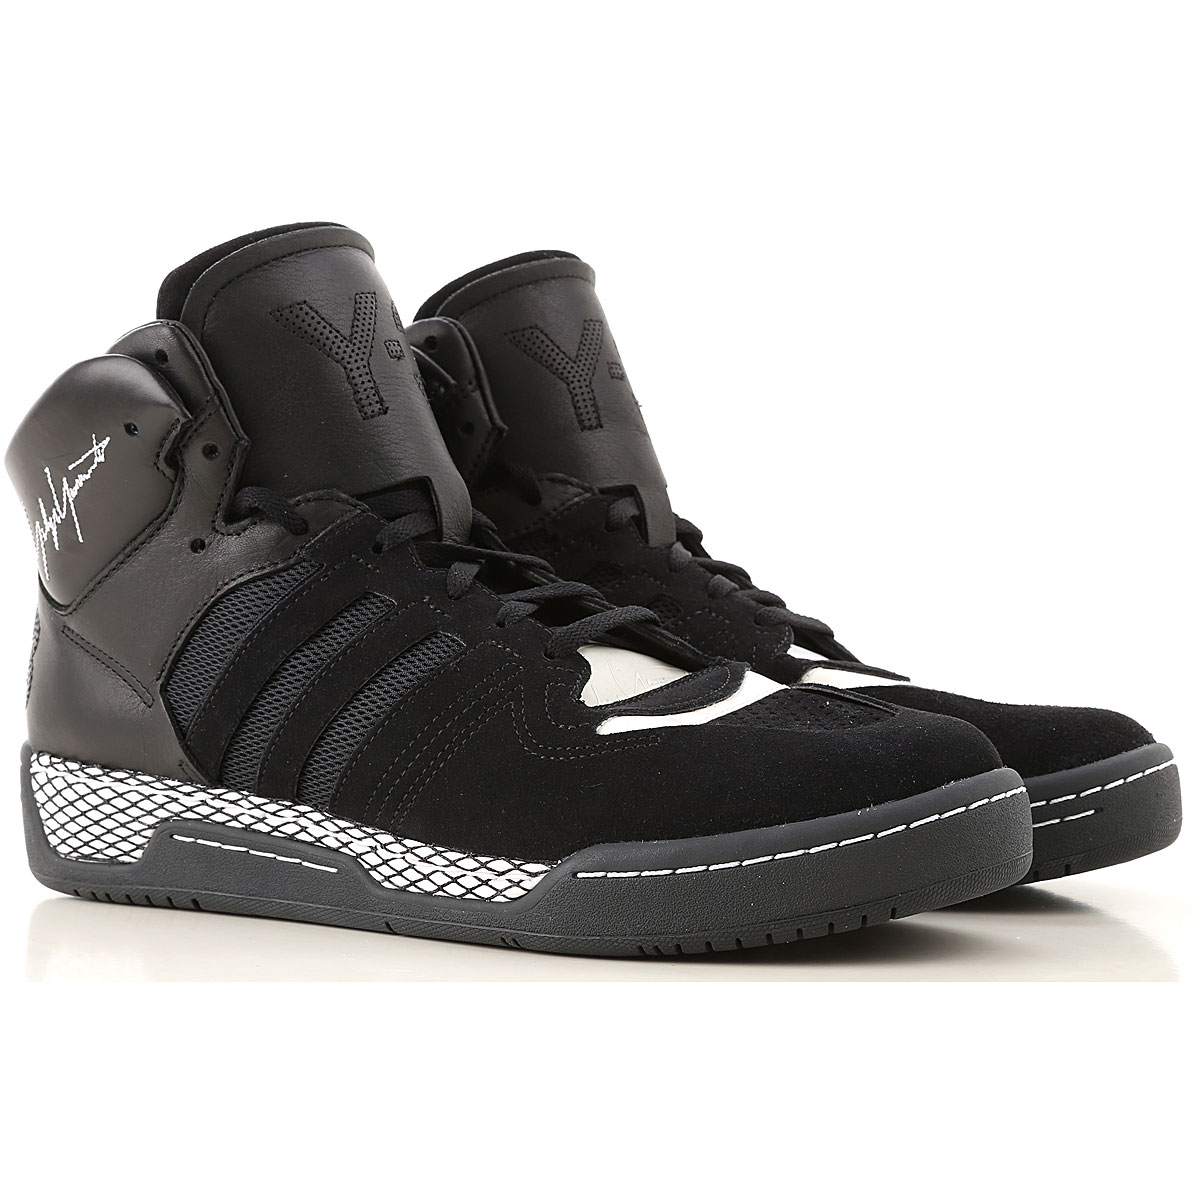 Y3 by Yohji Yamamoto Sneakers for Men On Sale in Outlet, Black, Leather, 2019, 7.5